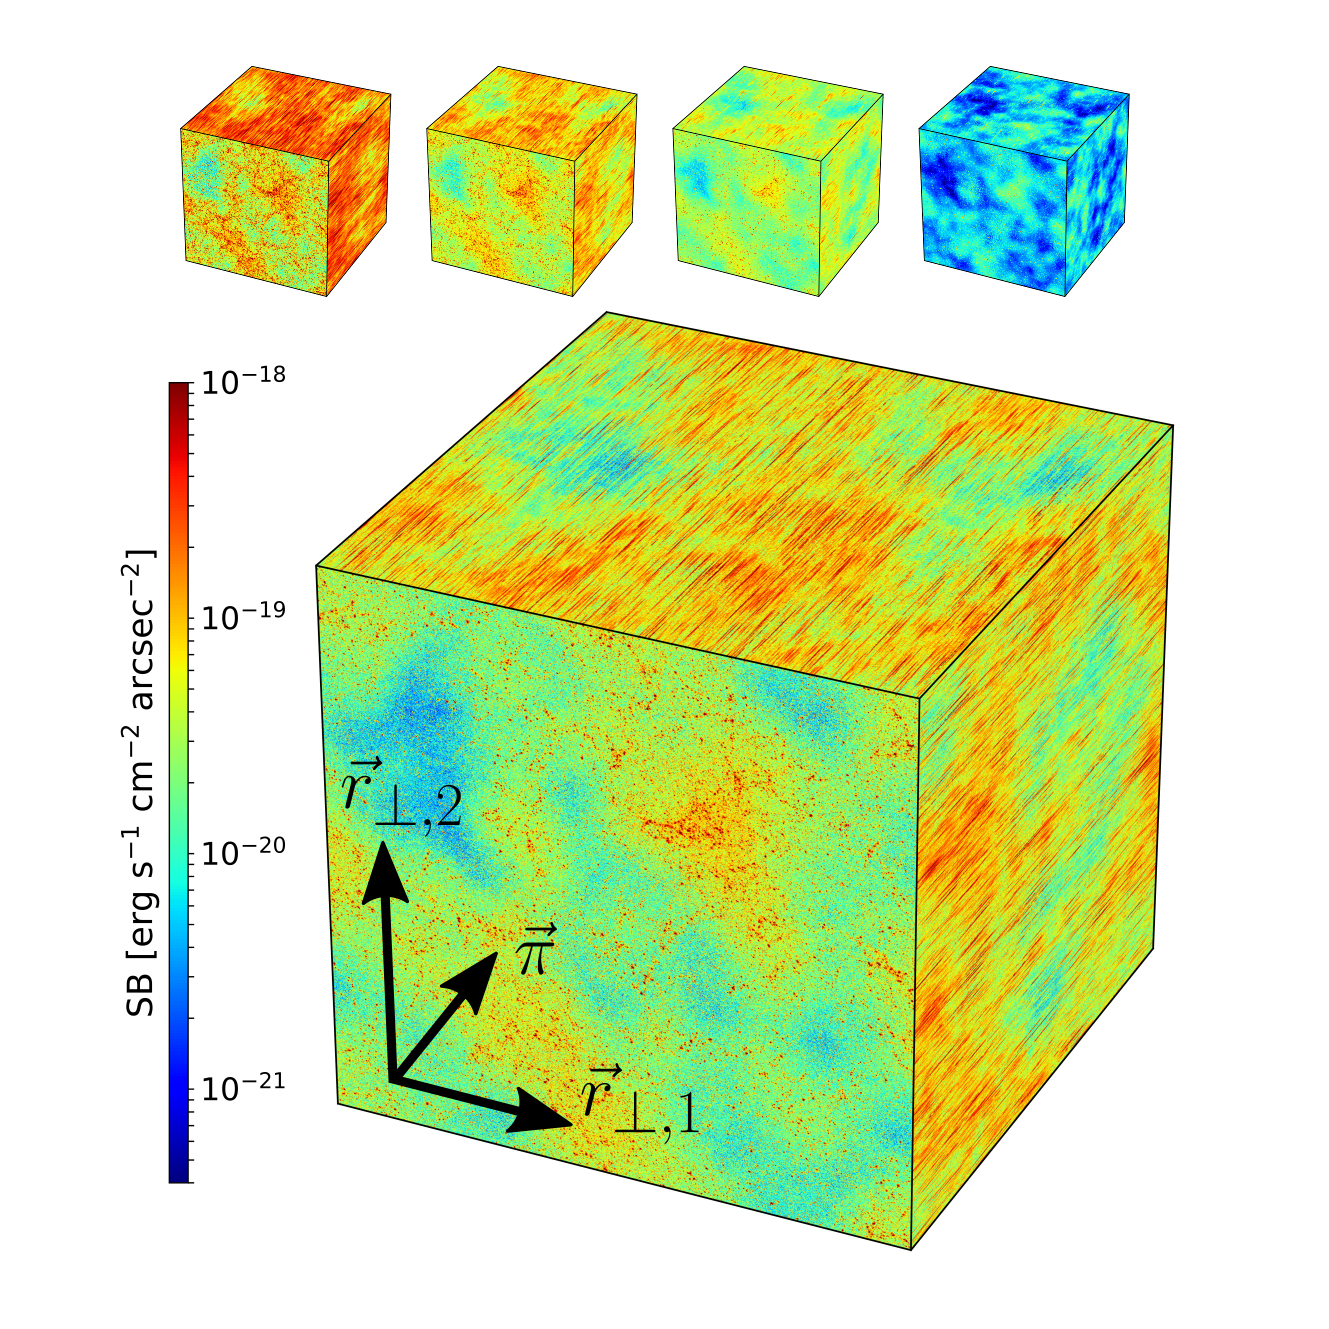 Mock intensity maps after radiative transfer as projected cubes of the Illustris simulation boxes with a length of 75 Mpc/h. Redshifts from left to right: 2.00, 3.01, 4.01, 5.85. Enlargened version shows z=3.01. From these cubes, individual LAEs can be reconstructed to construct mock observations.